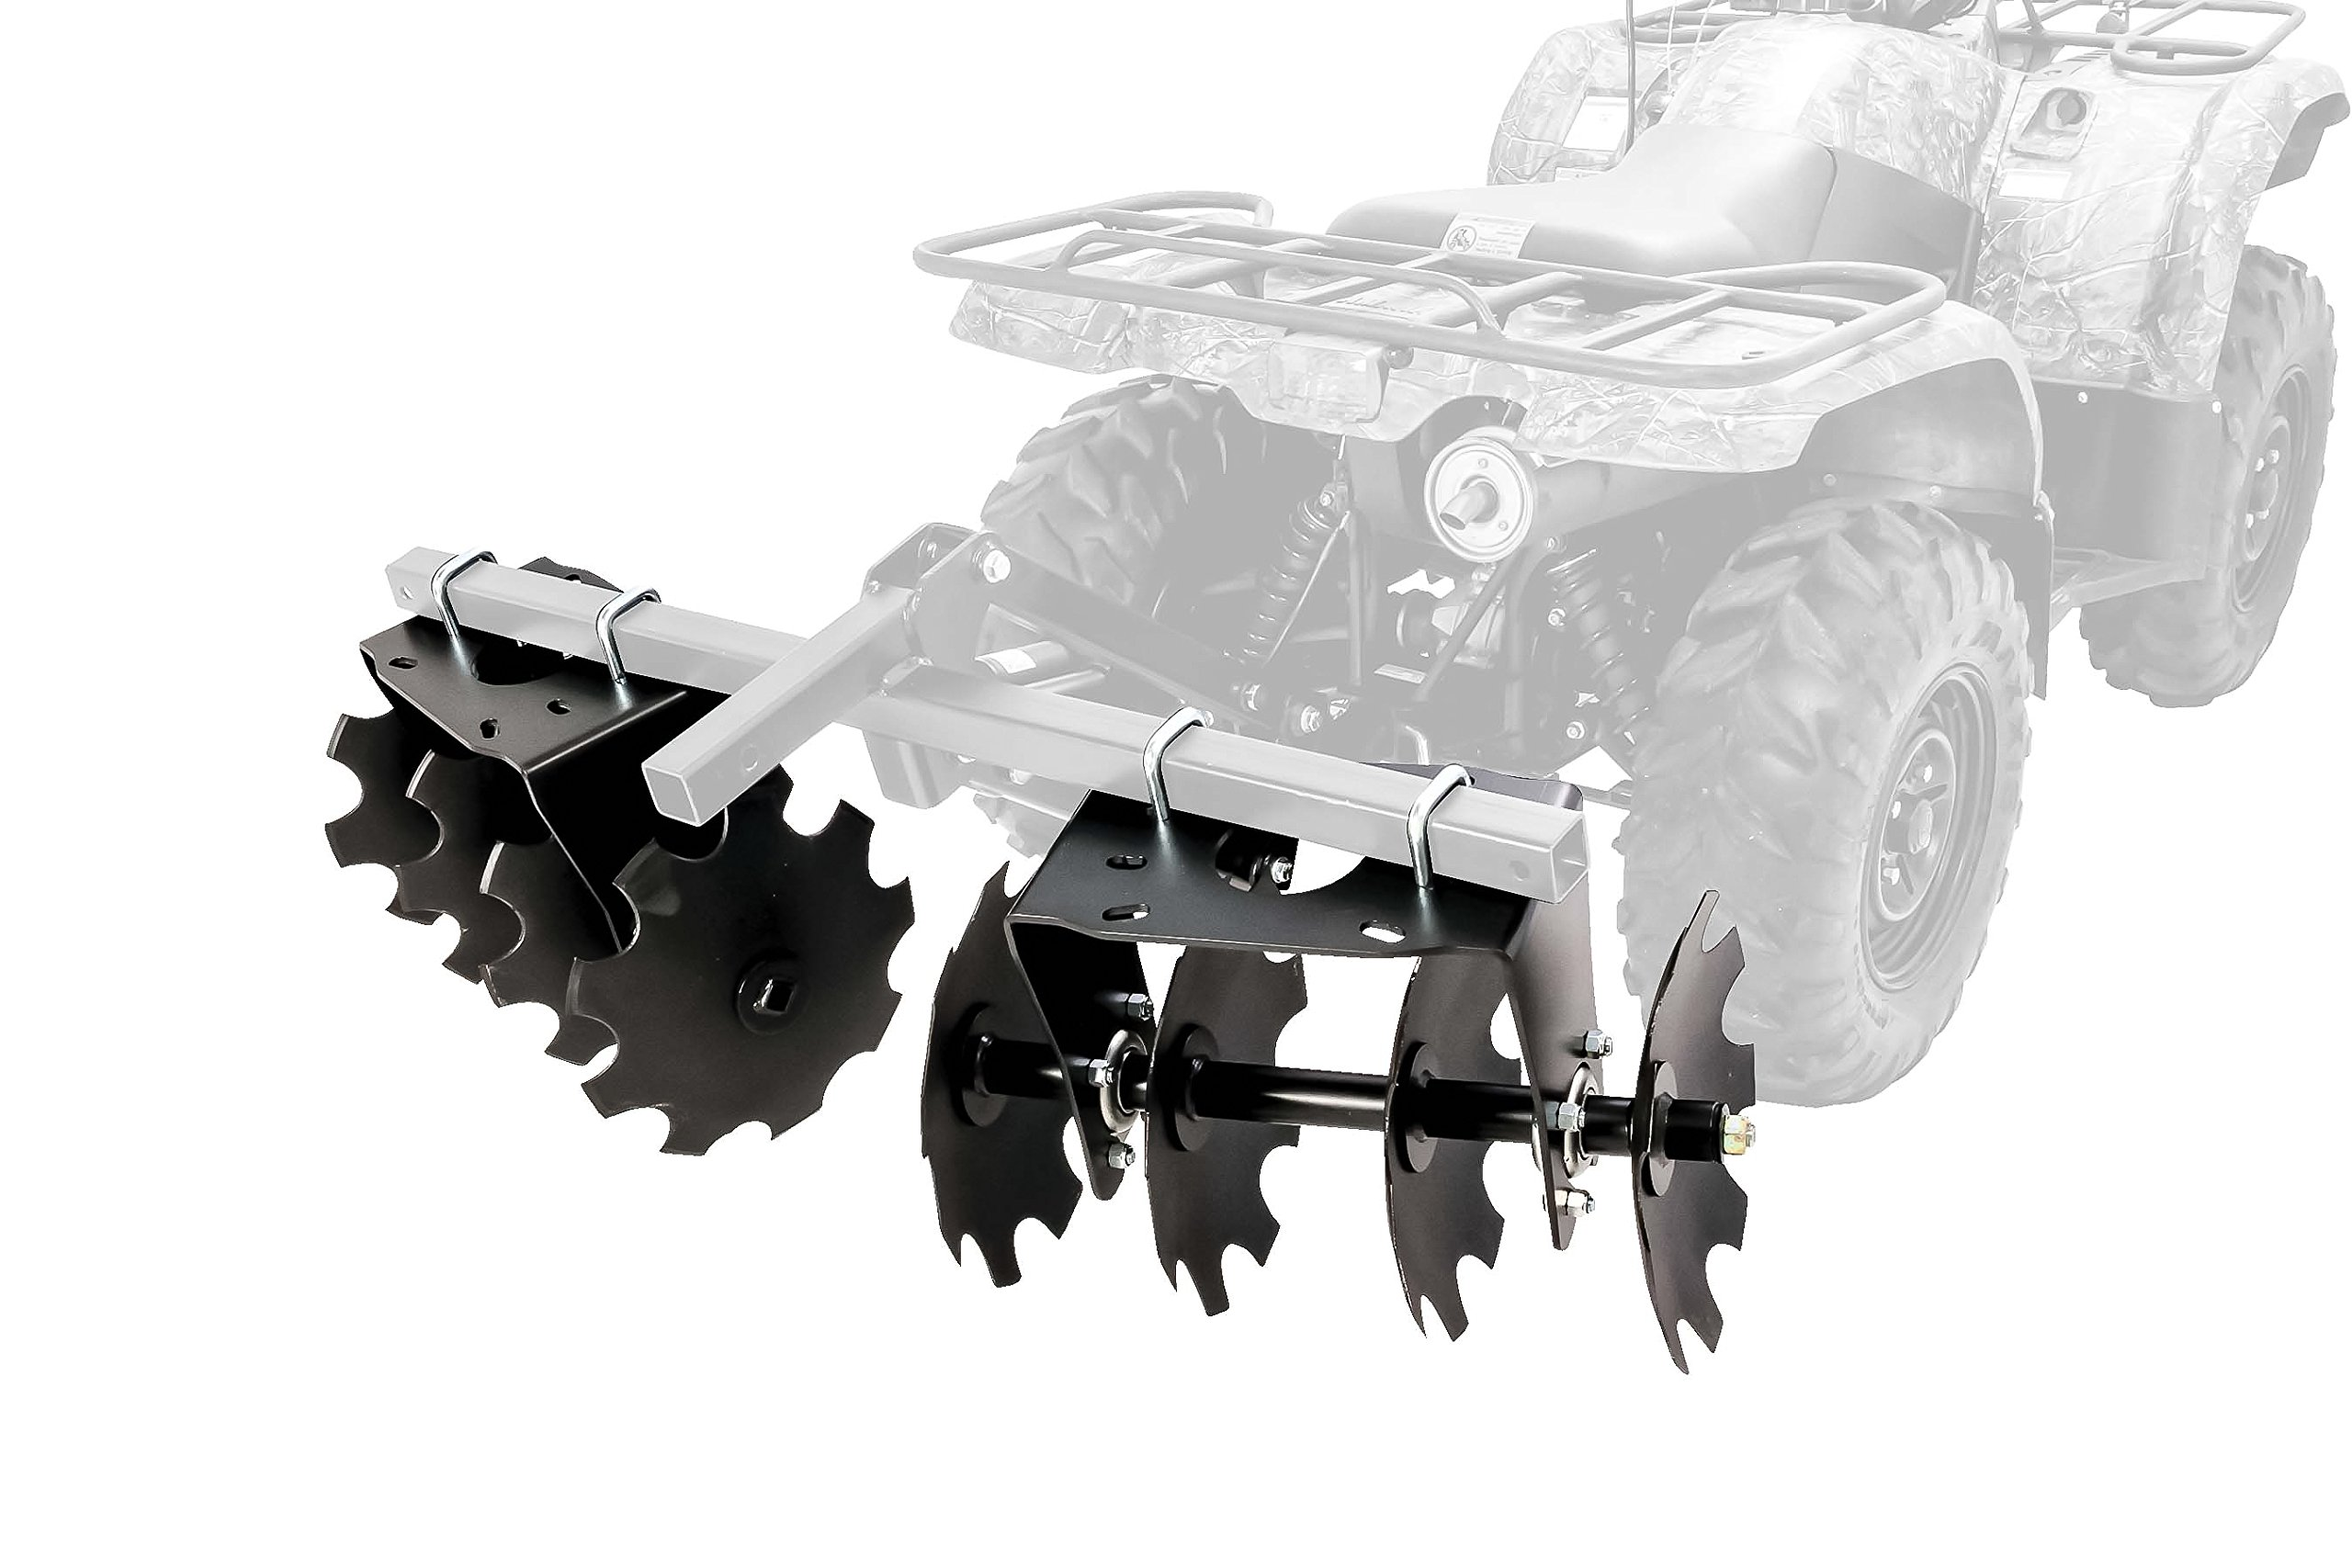 Black Boar ATV/UTV Disc Harrow Implement with Adjustable Sides, for Cultivating, Establishing a Food Plot and Maintaining Your Property (66001) by Black Boar